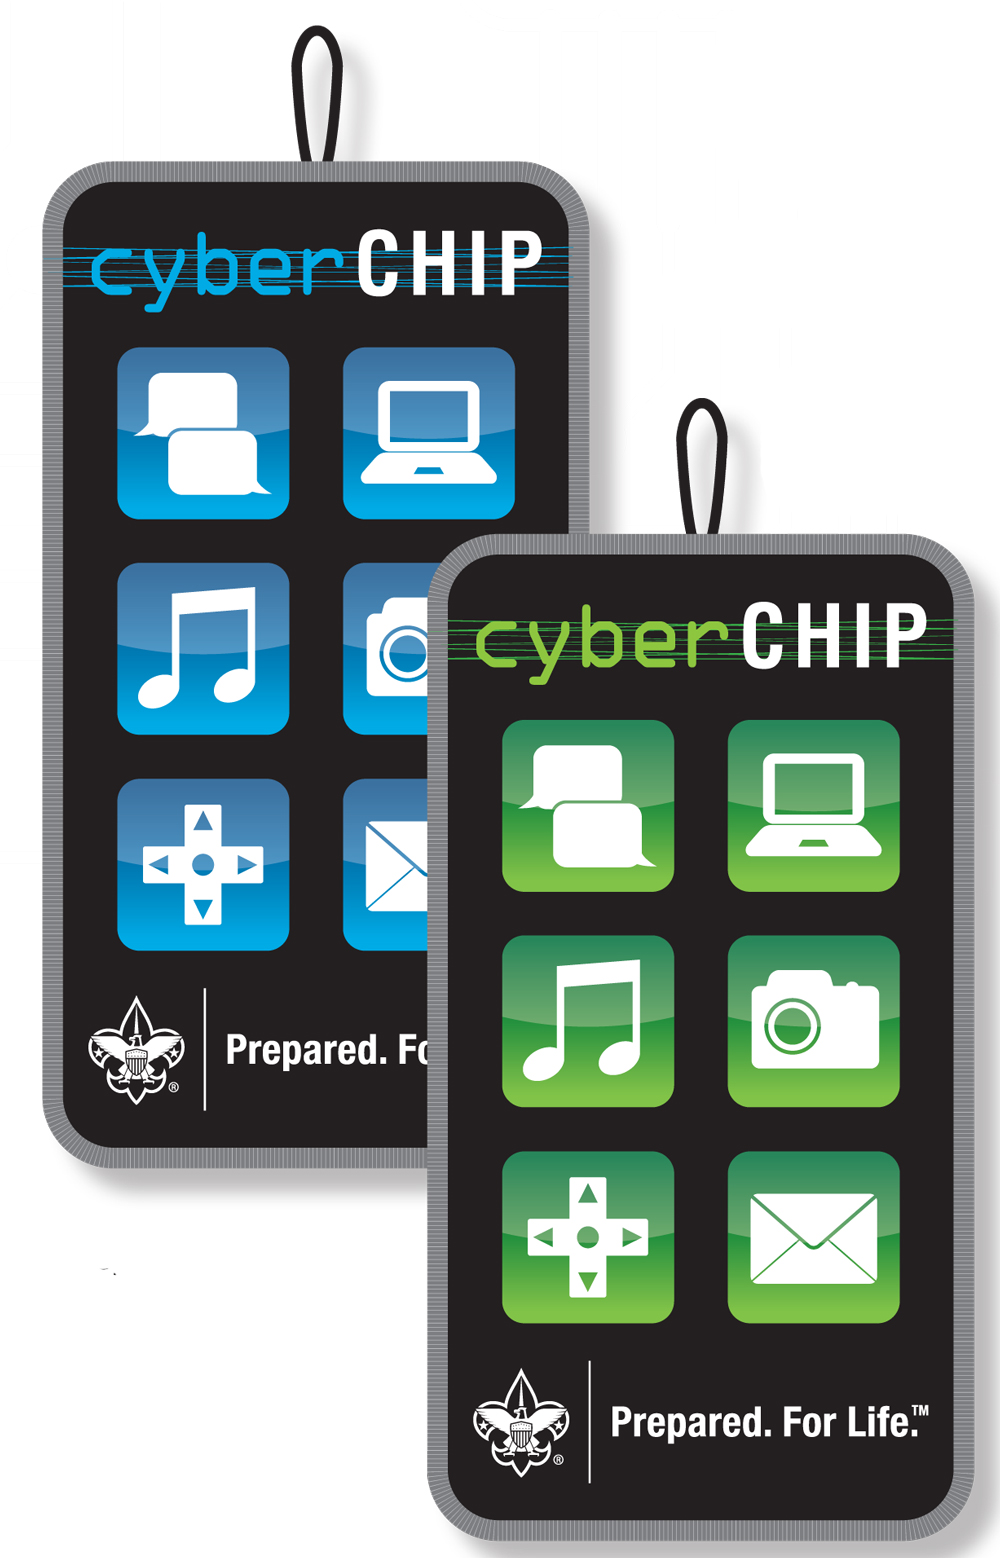 Cyber Chip image